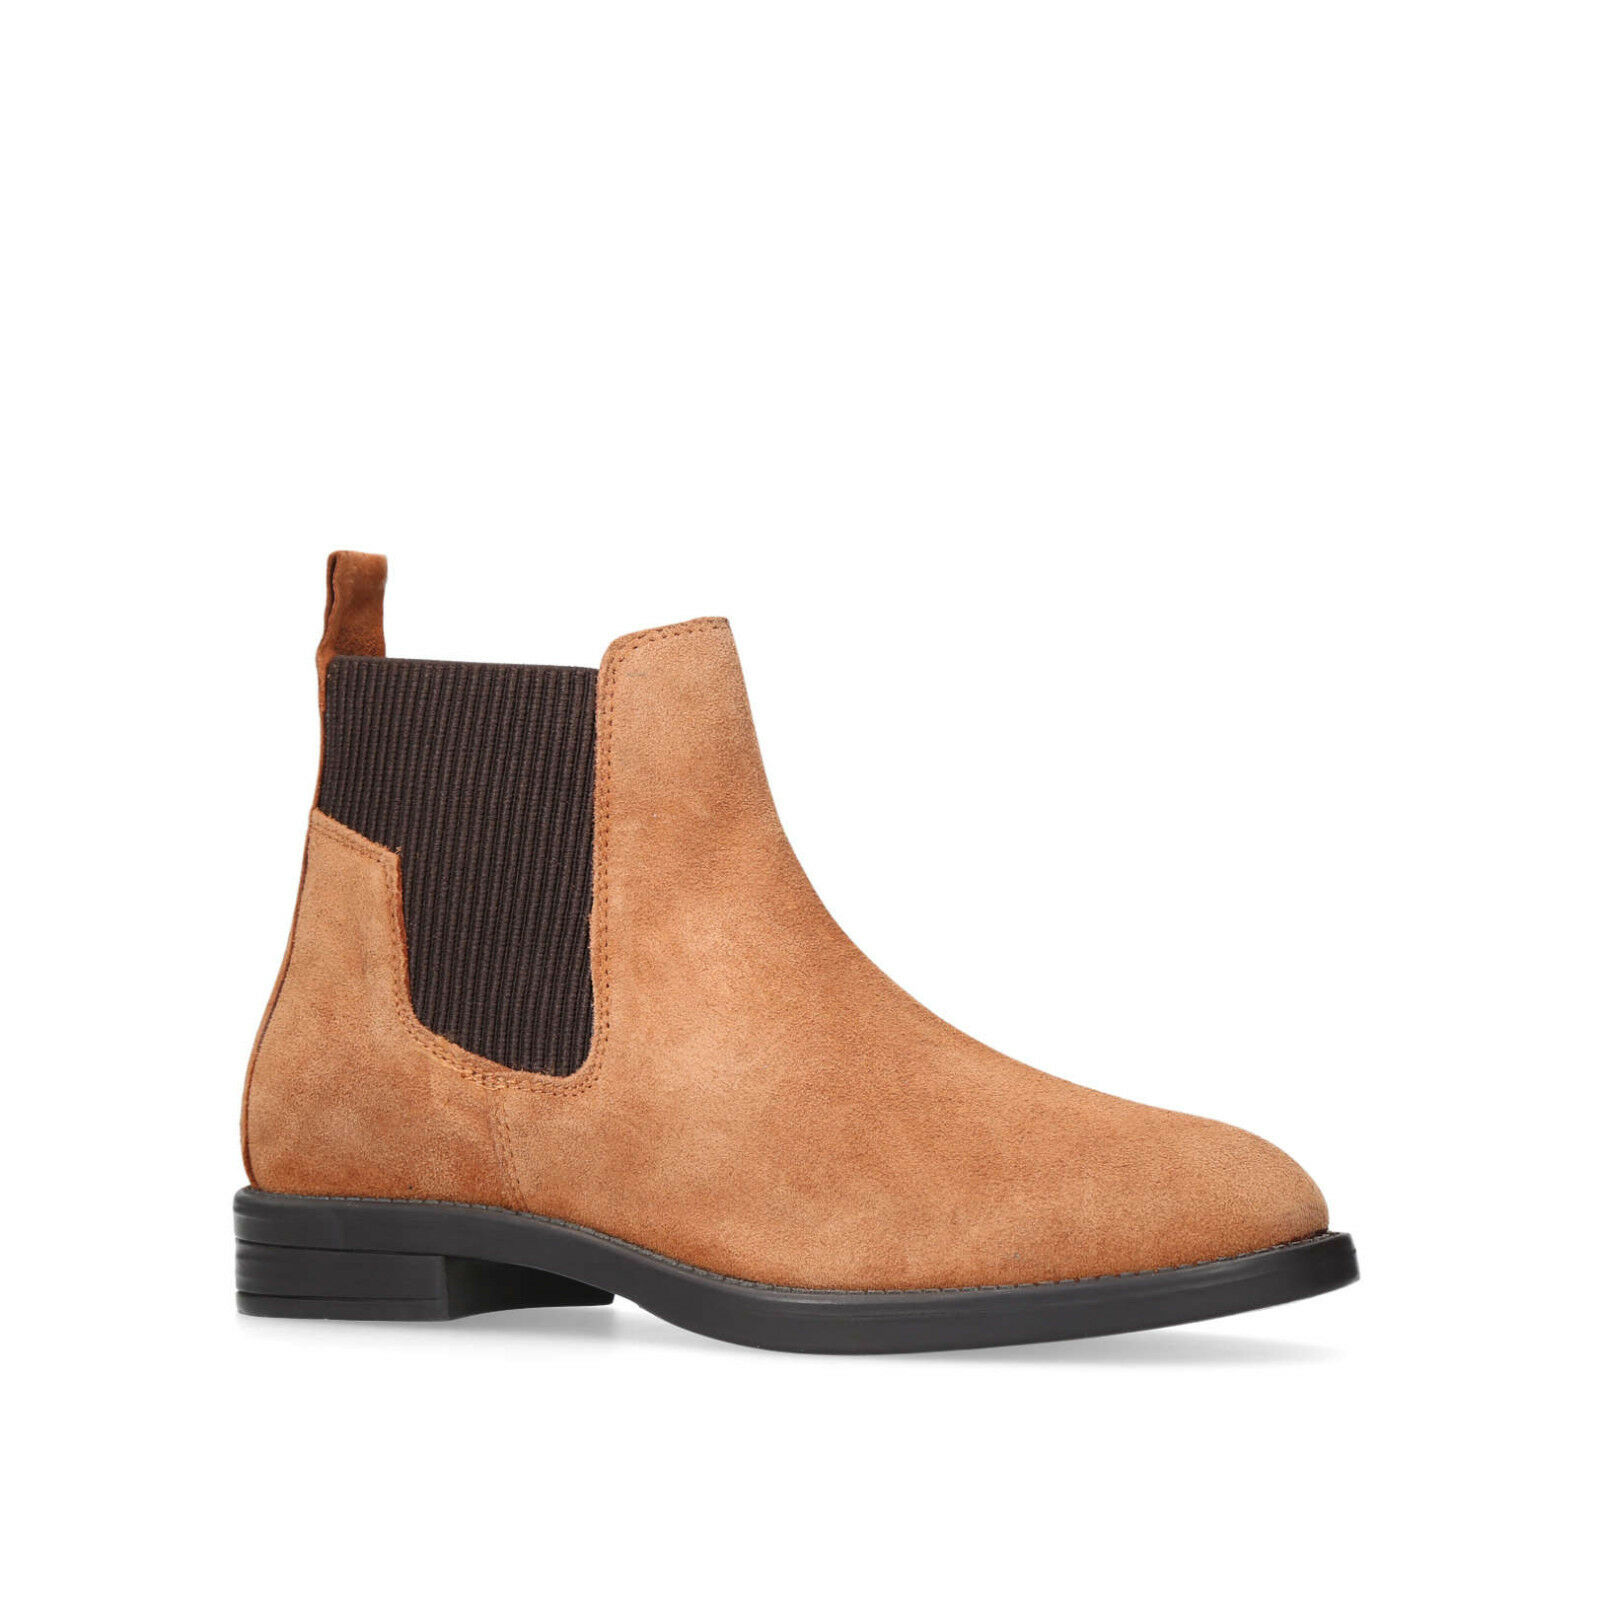 Grandes zapatos con descuento CARVELA KURT GEIGER RANDALL TAN BROWN SUEDE LEATHER CHELSEA ANKLE BOOTS 8 41 10